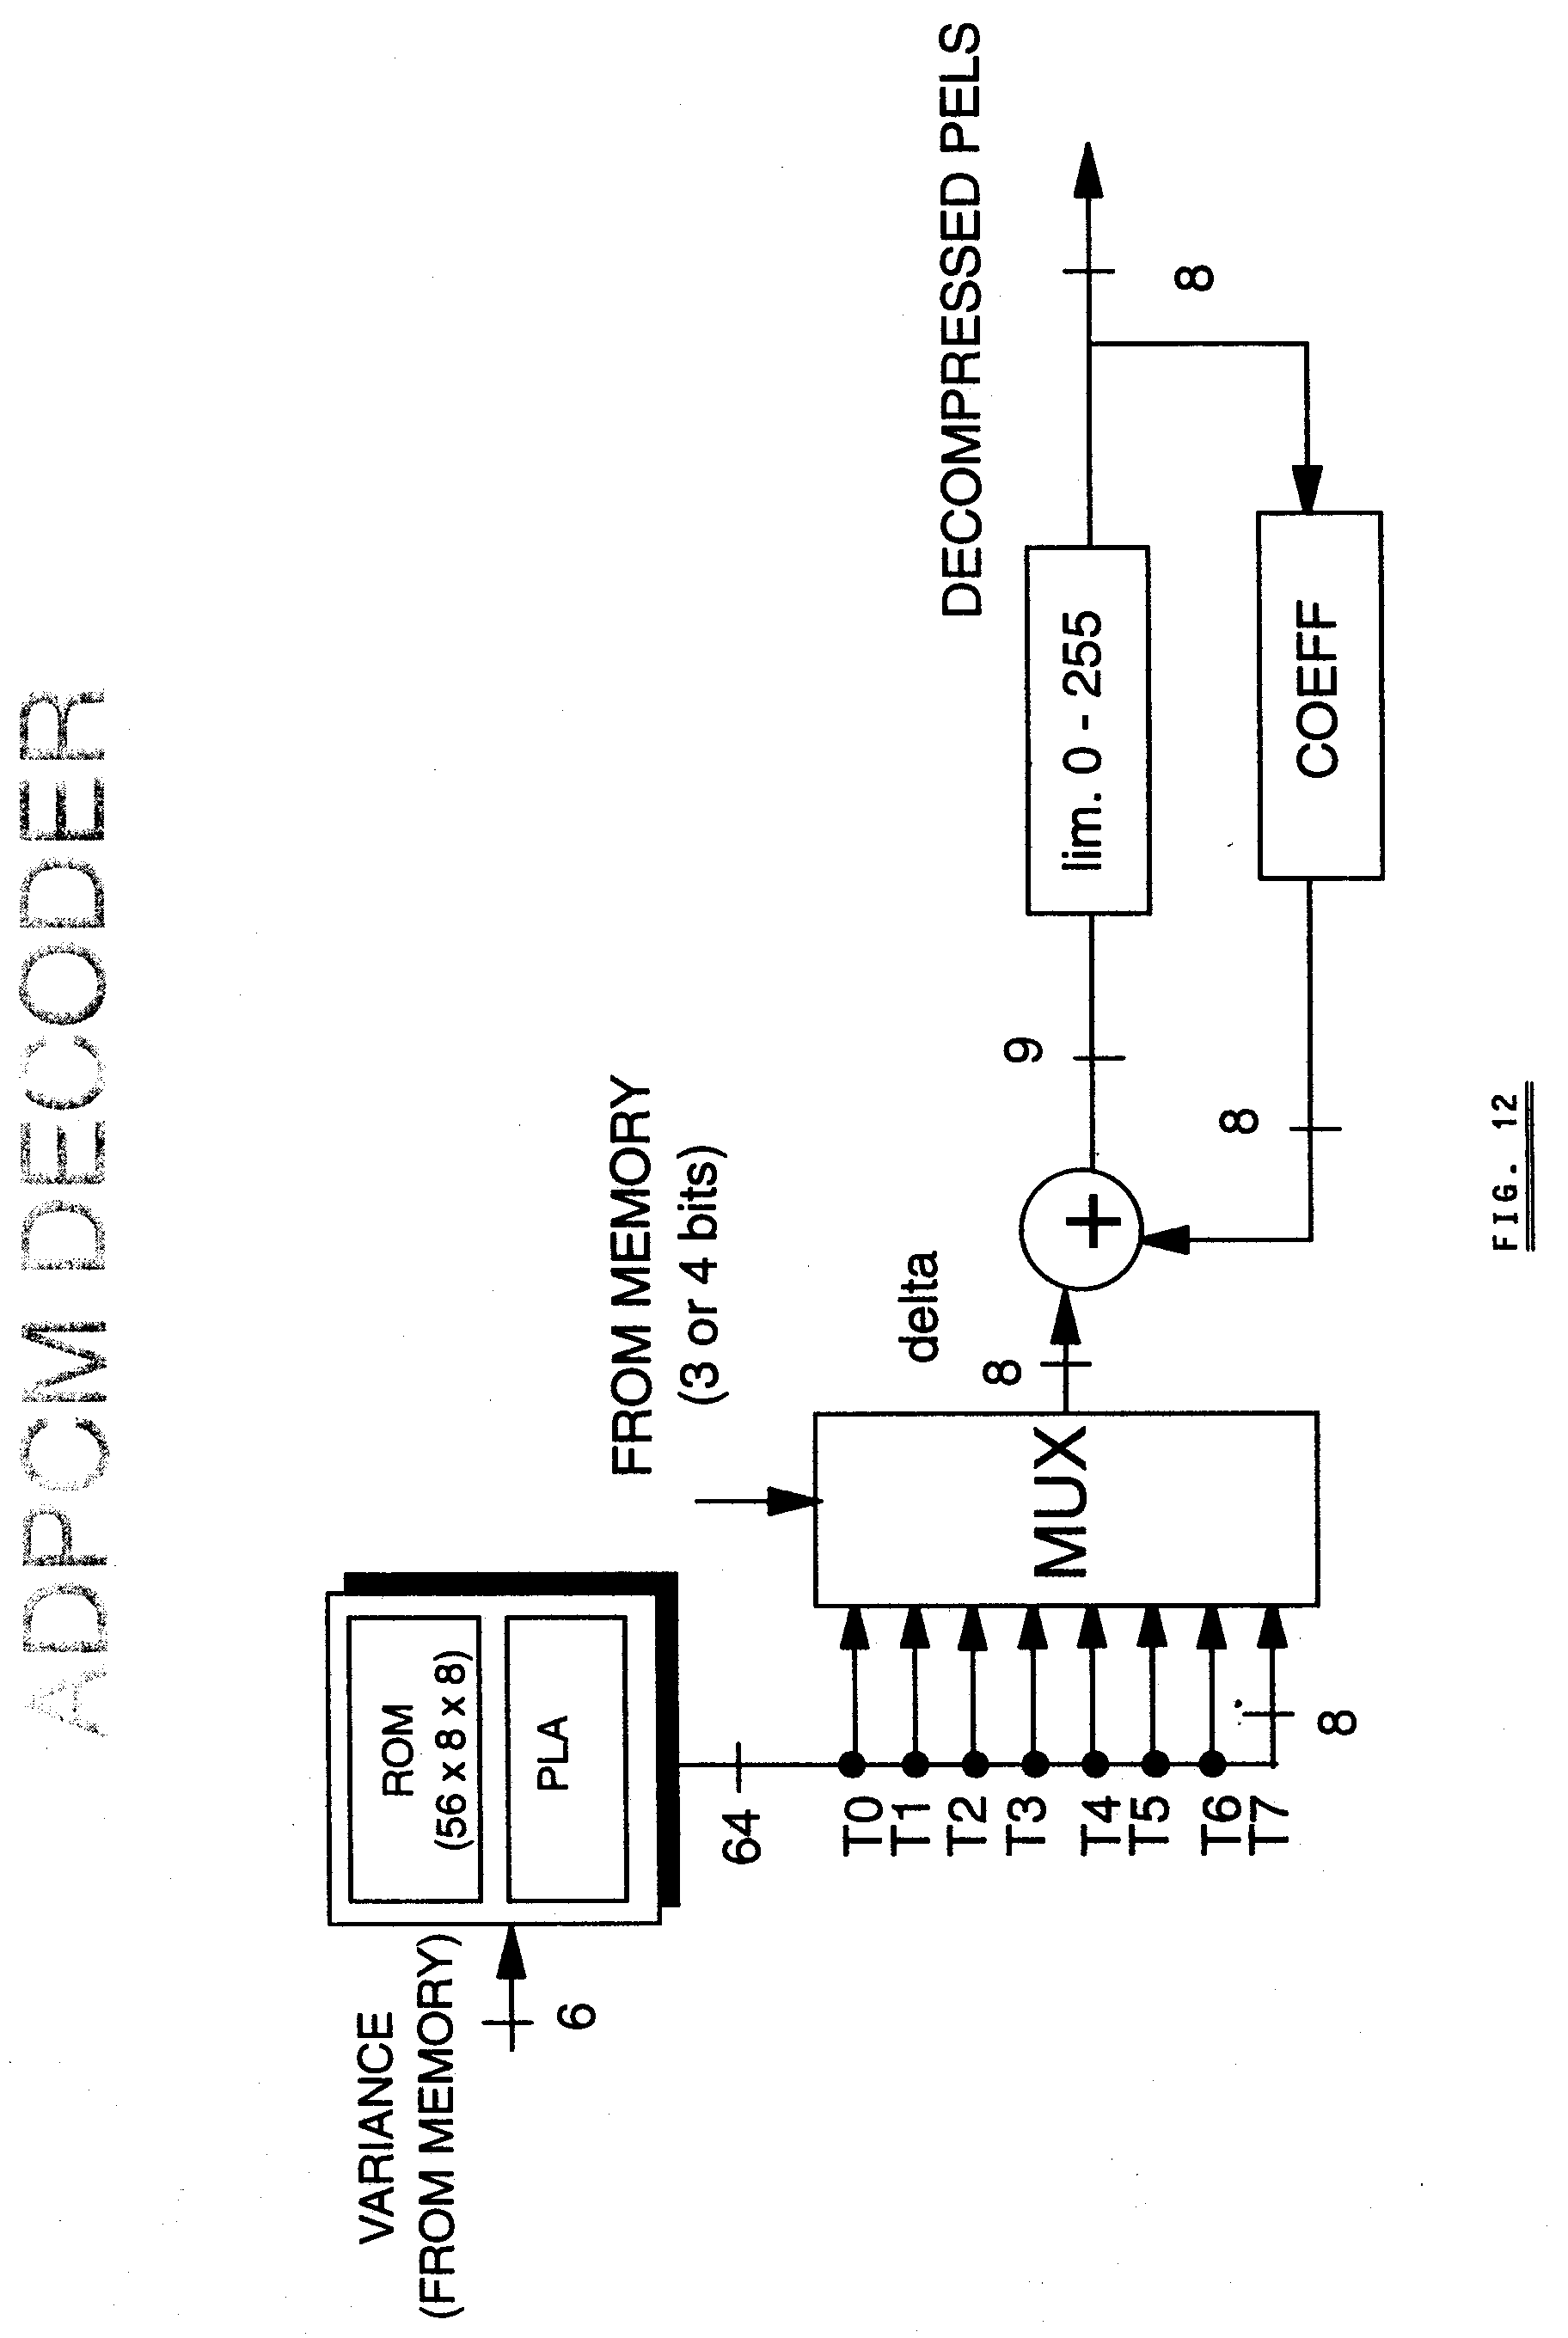 Patent Ep0817498a1 Mpeg 2 Decoding With A Reduced Ram Requisite By Pal Decoder Block Diagram Drawing